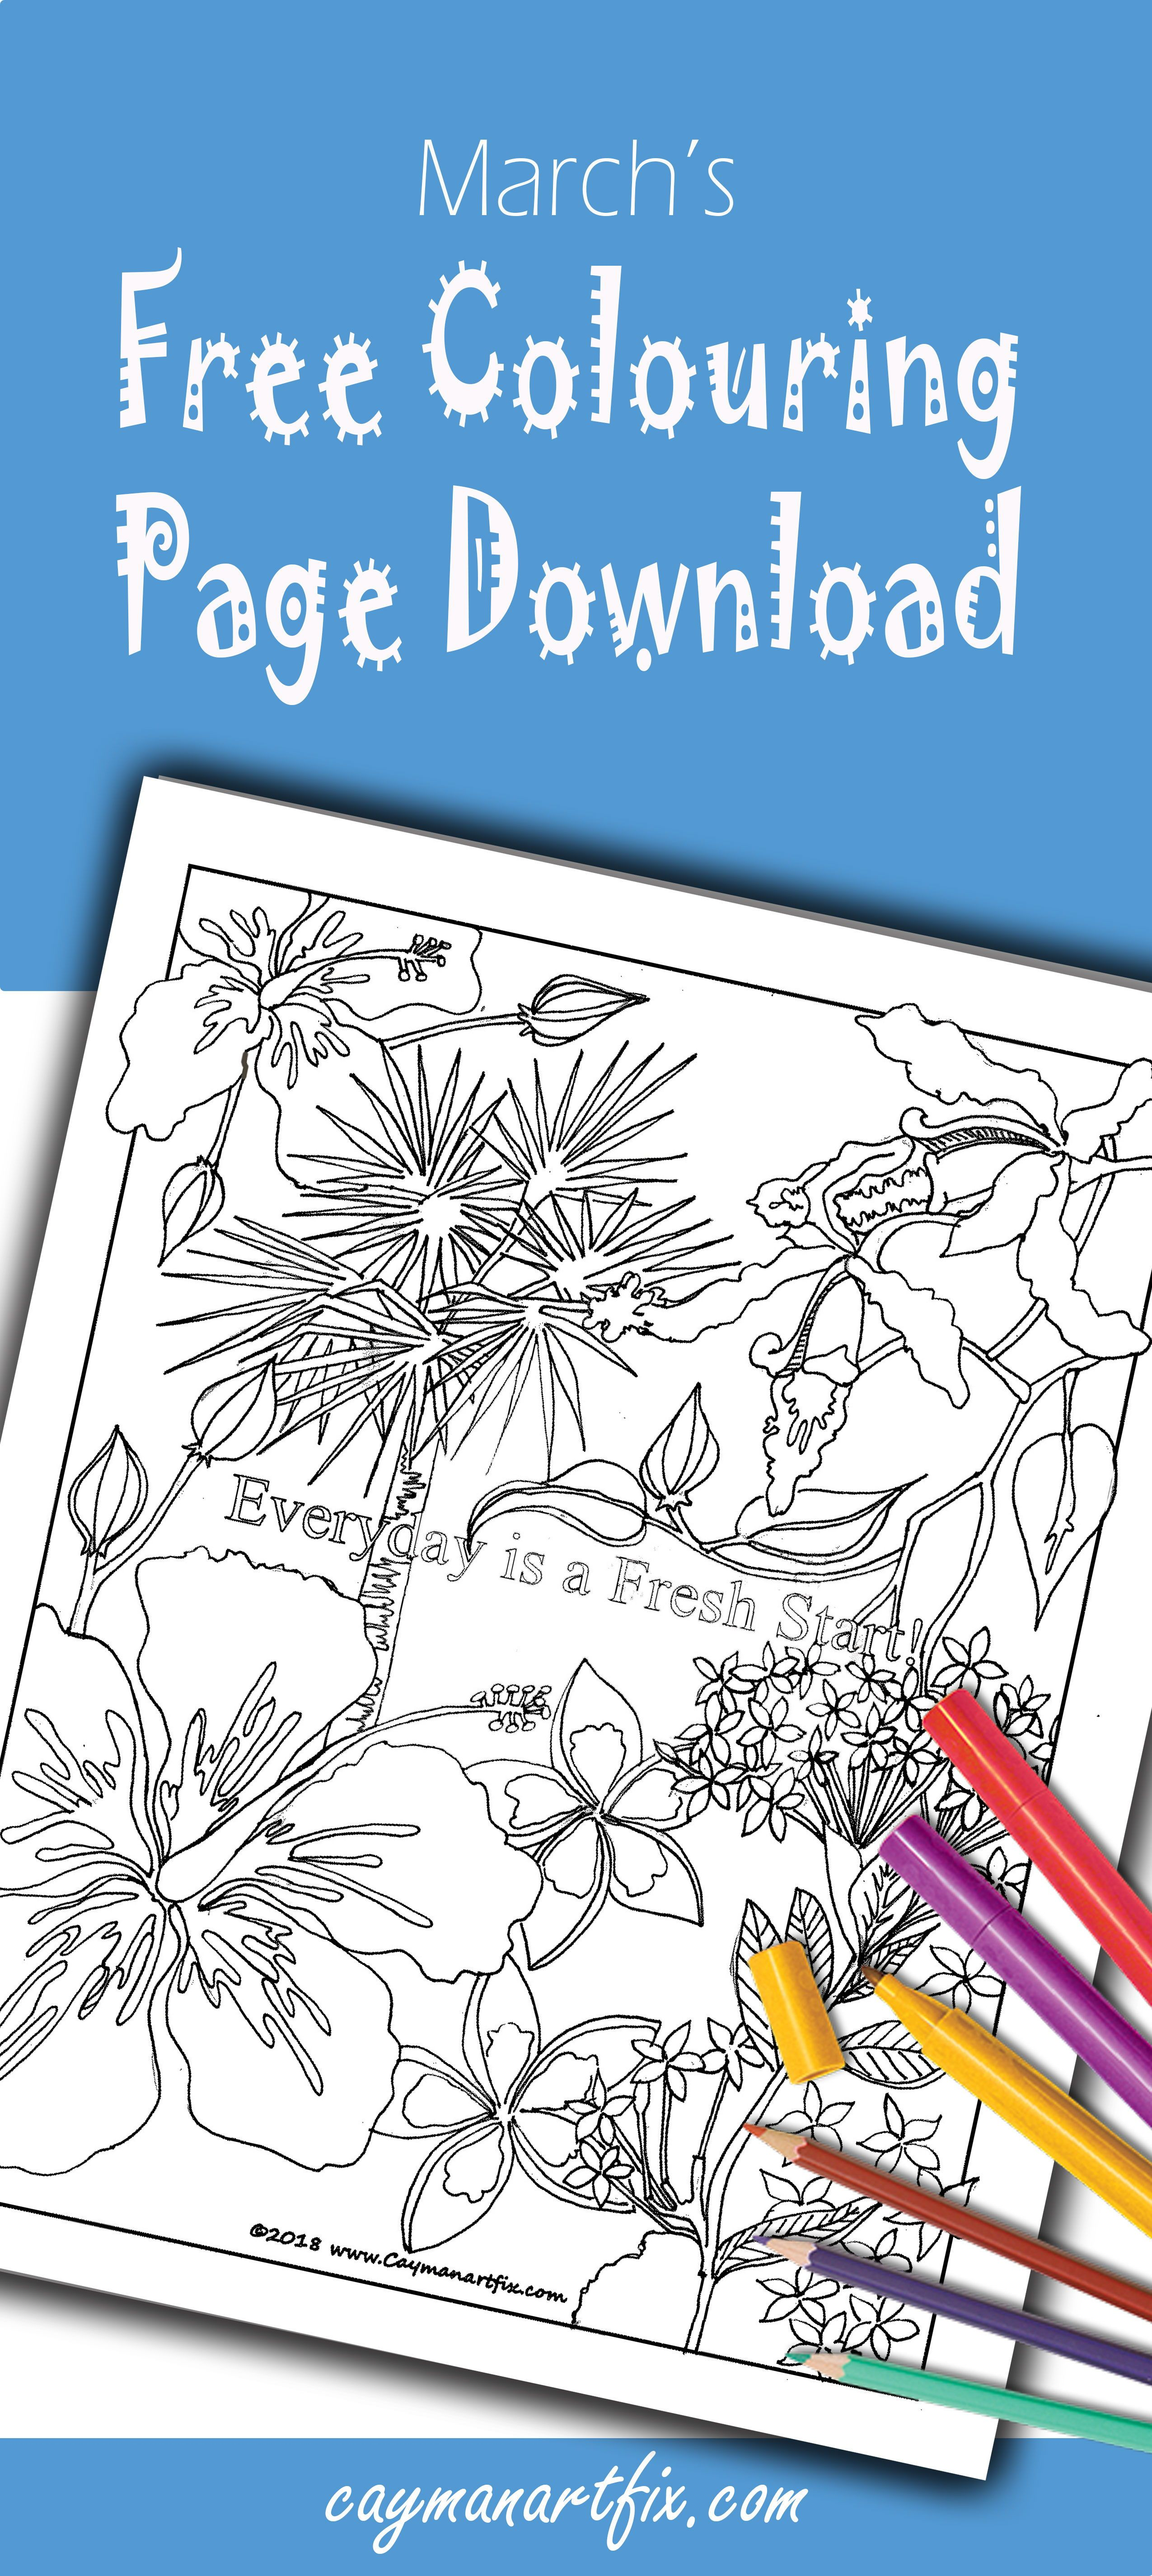 Free Colouring Page for March! Everyday is a fresh start! Grab your ...